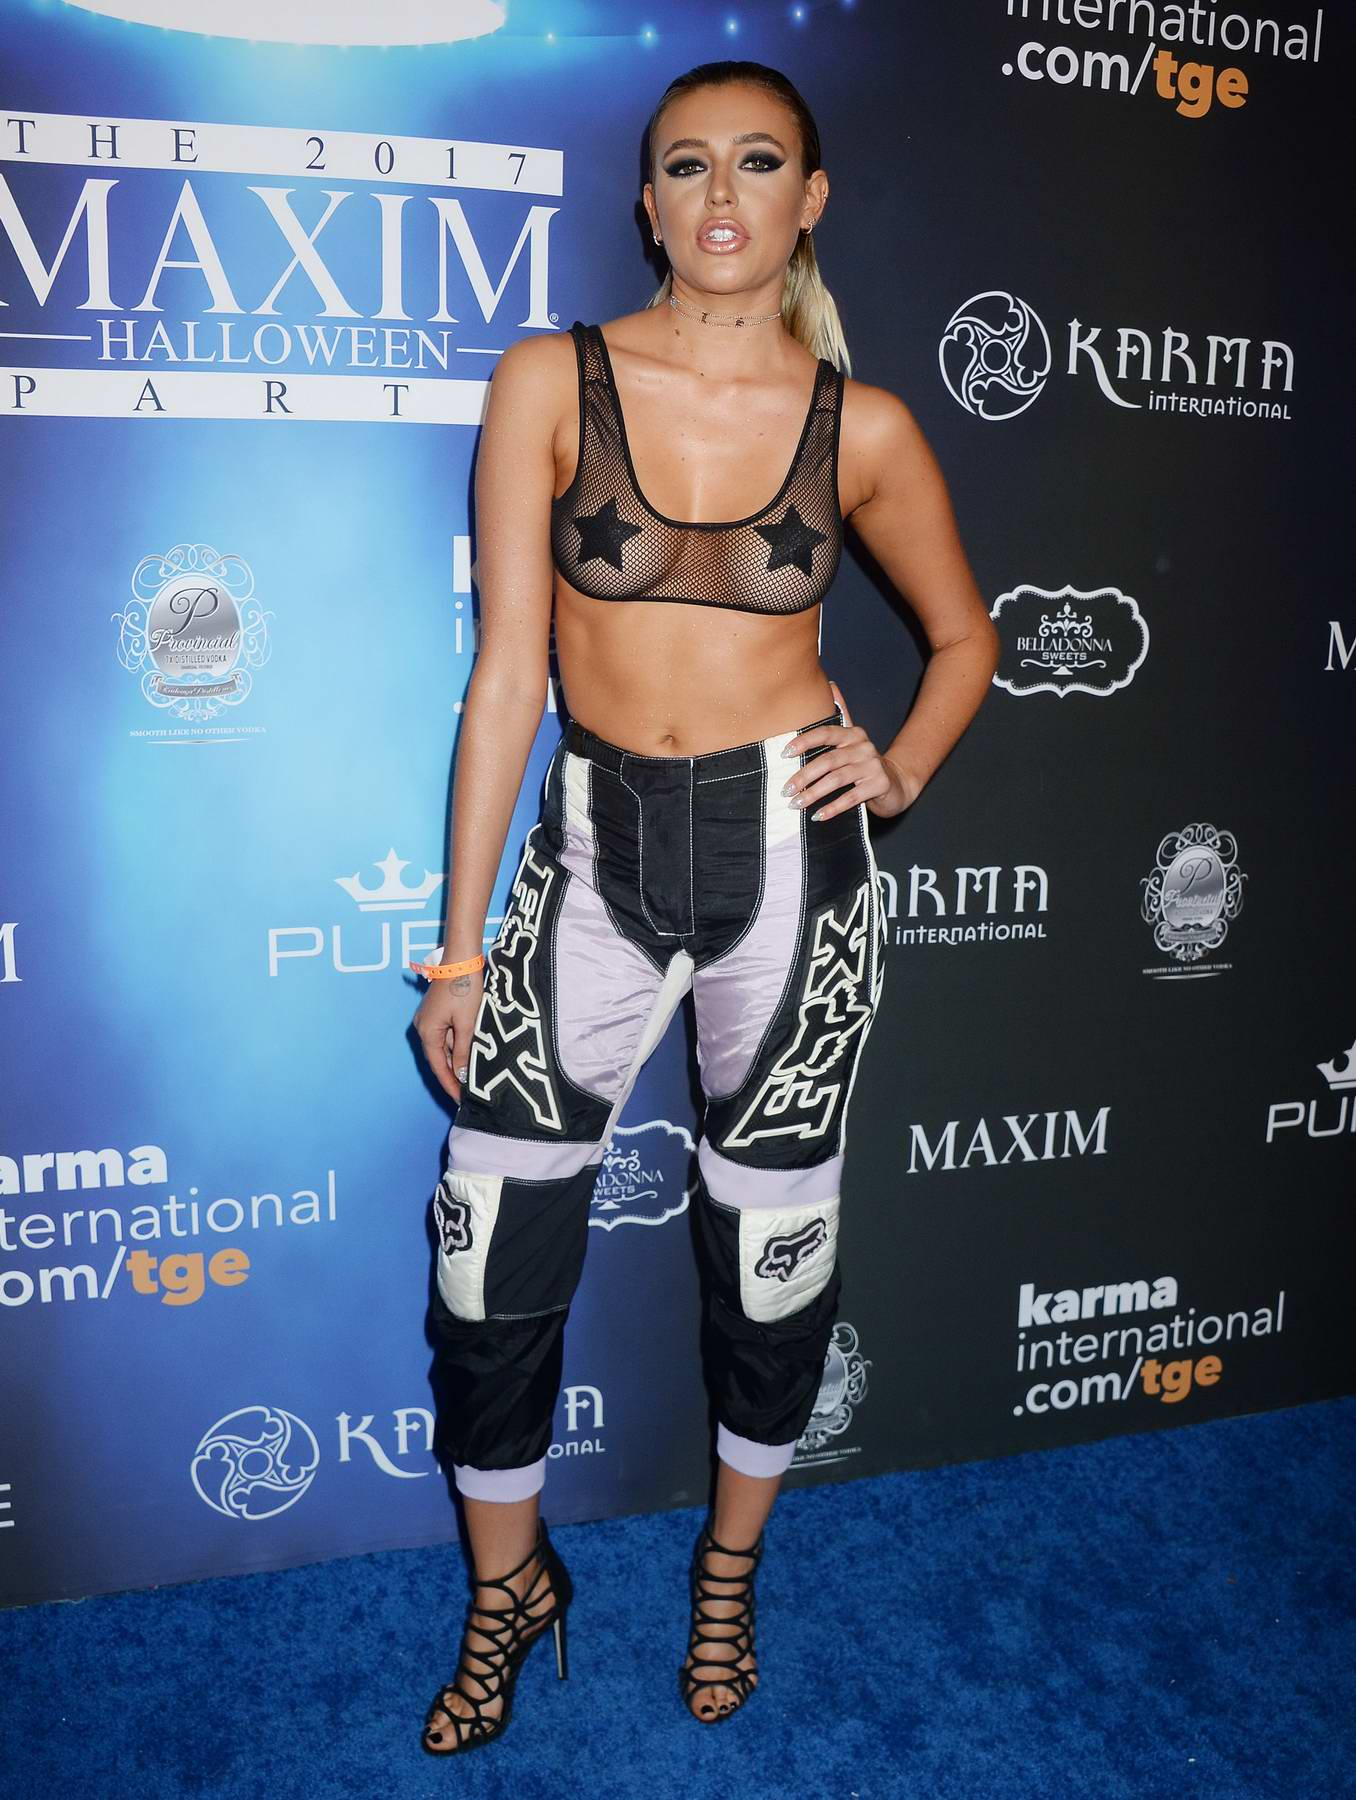 Monica Sims at the Maxim Halloween party in Los Angeles